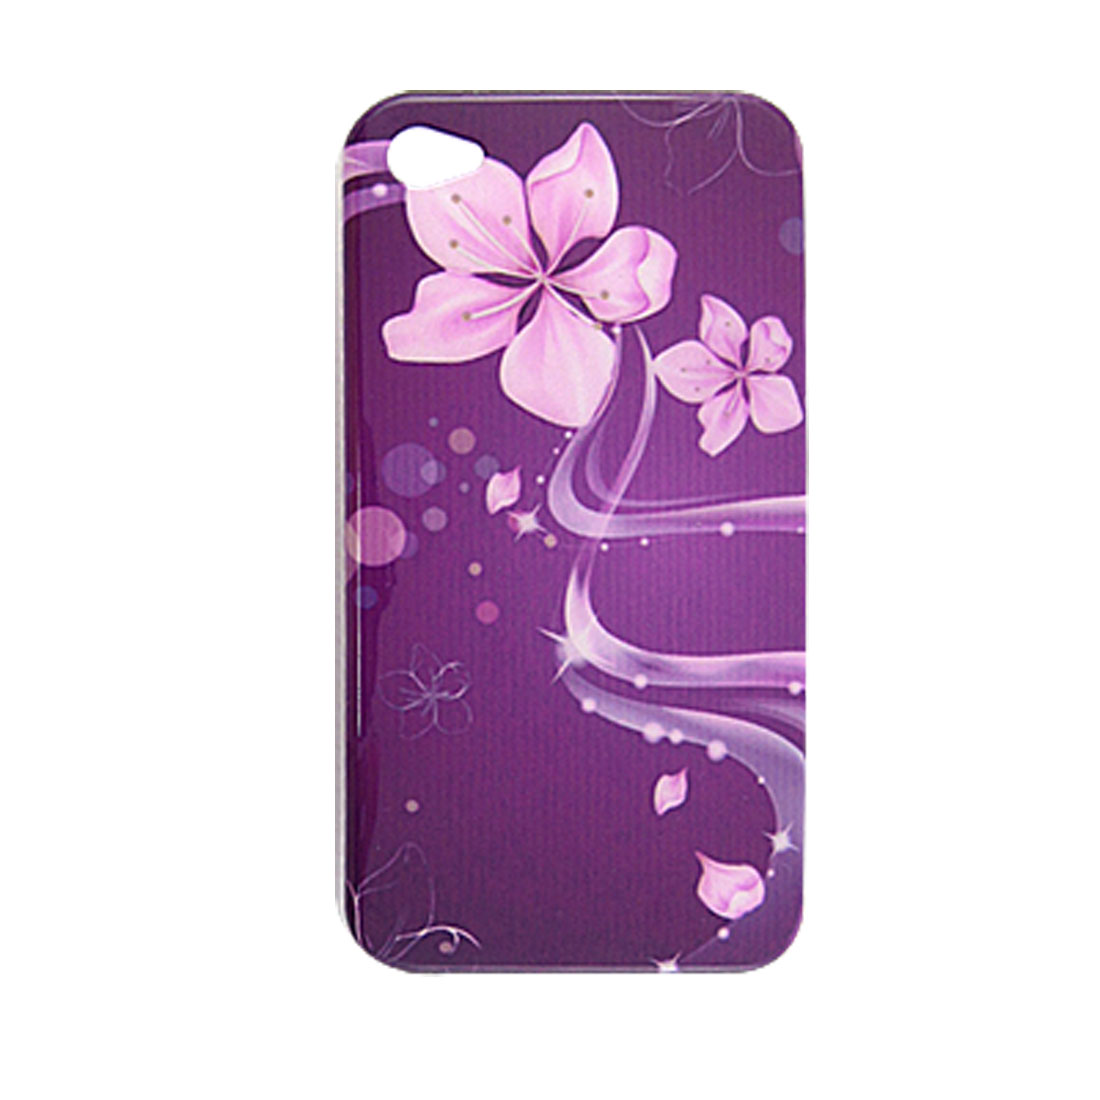 Pink Flower Hard Plastic IMD Protector Back Case for iPhone 4 4G